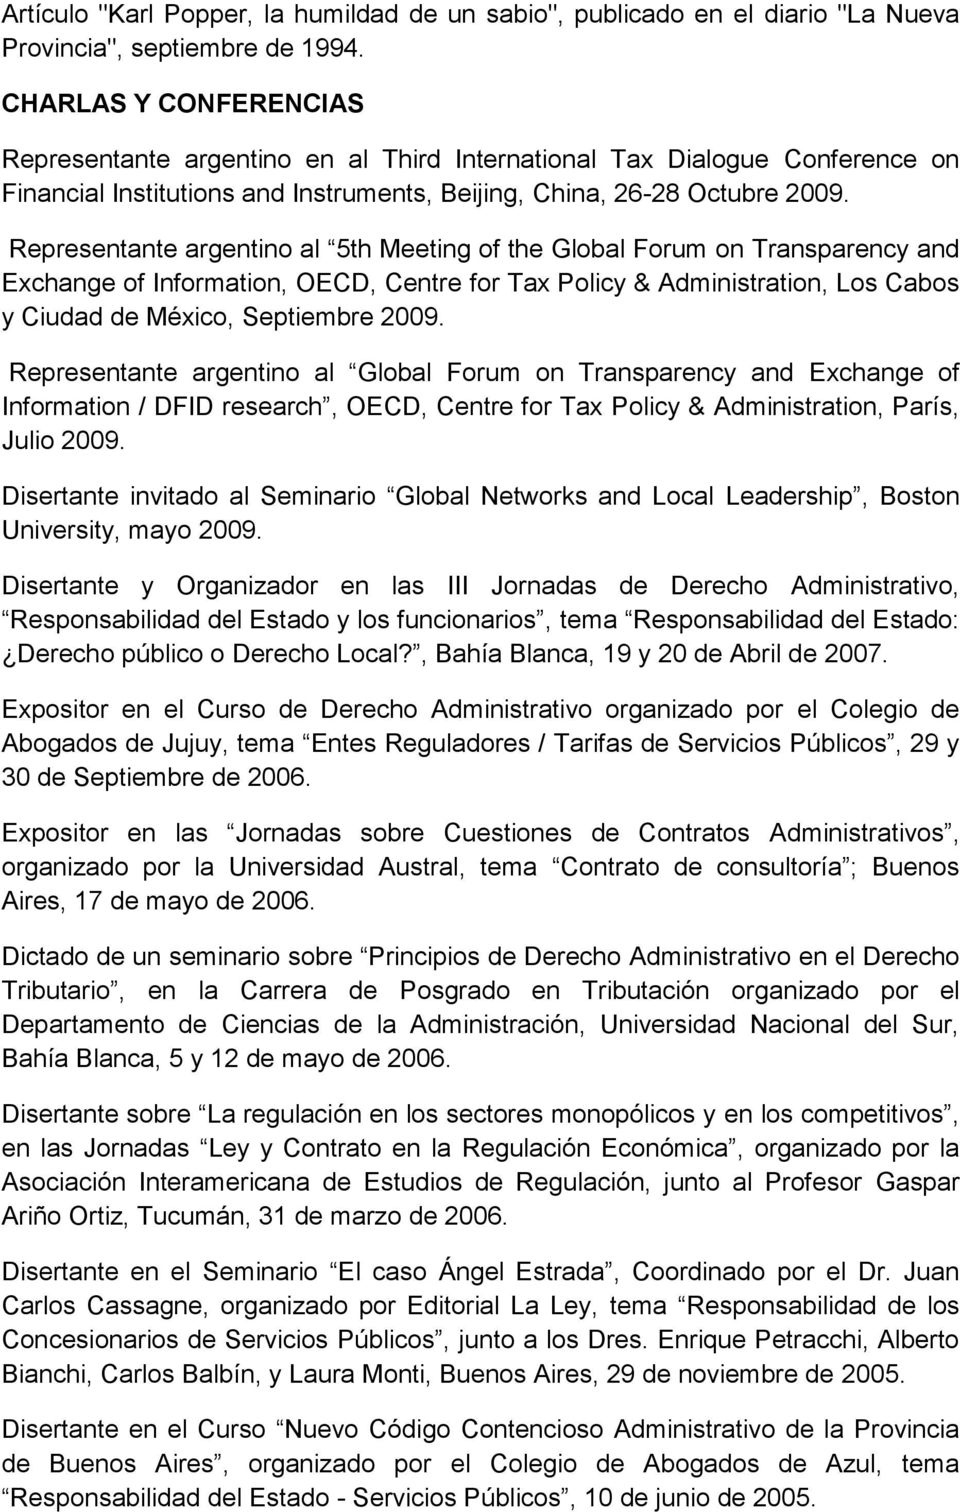 Representante argentino al 5th Meeting of the Global Forum on Transparency and Exchange of Information, OECD, Centre for Tax Policy & Administration, Los Cabos y Ciudad de México, Septiembre 2009.